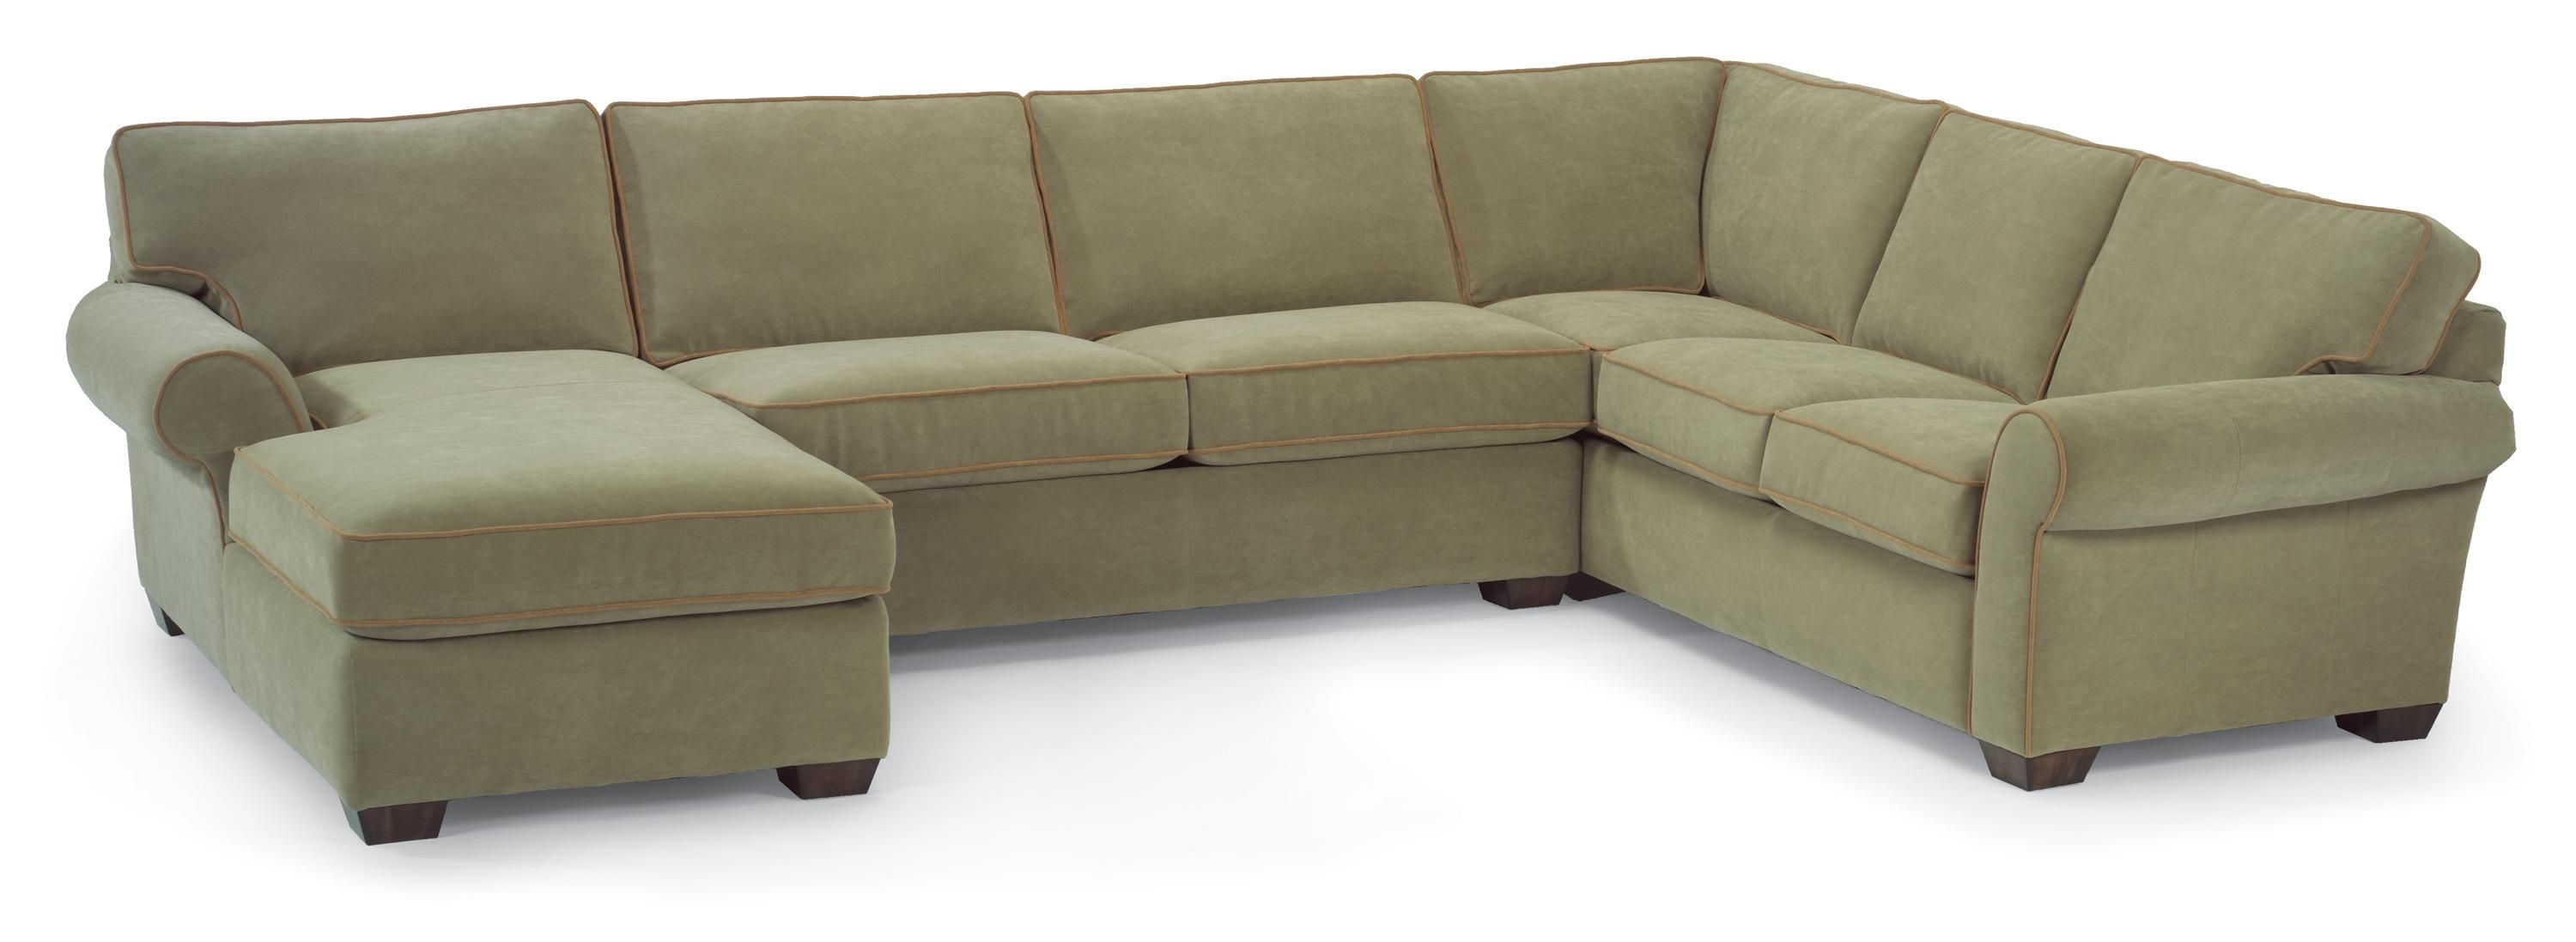 Vail Stationary Sectional Sofa by Flexsteel love love love